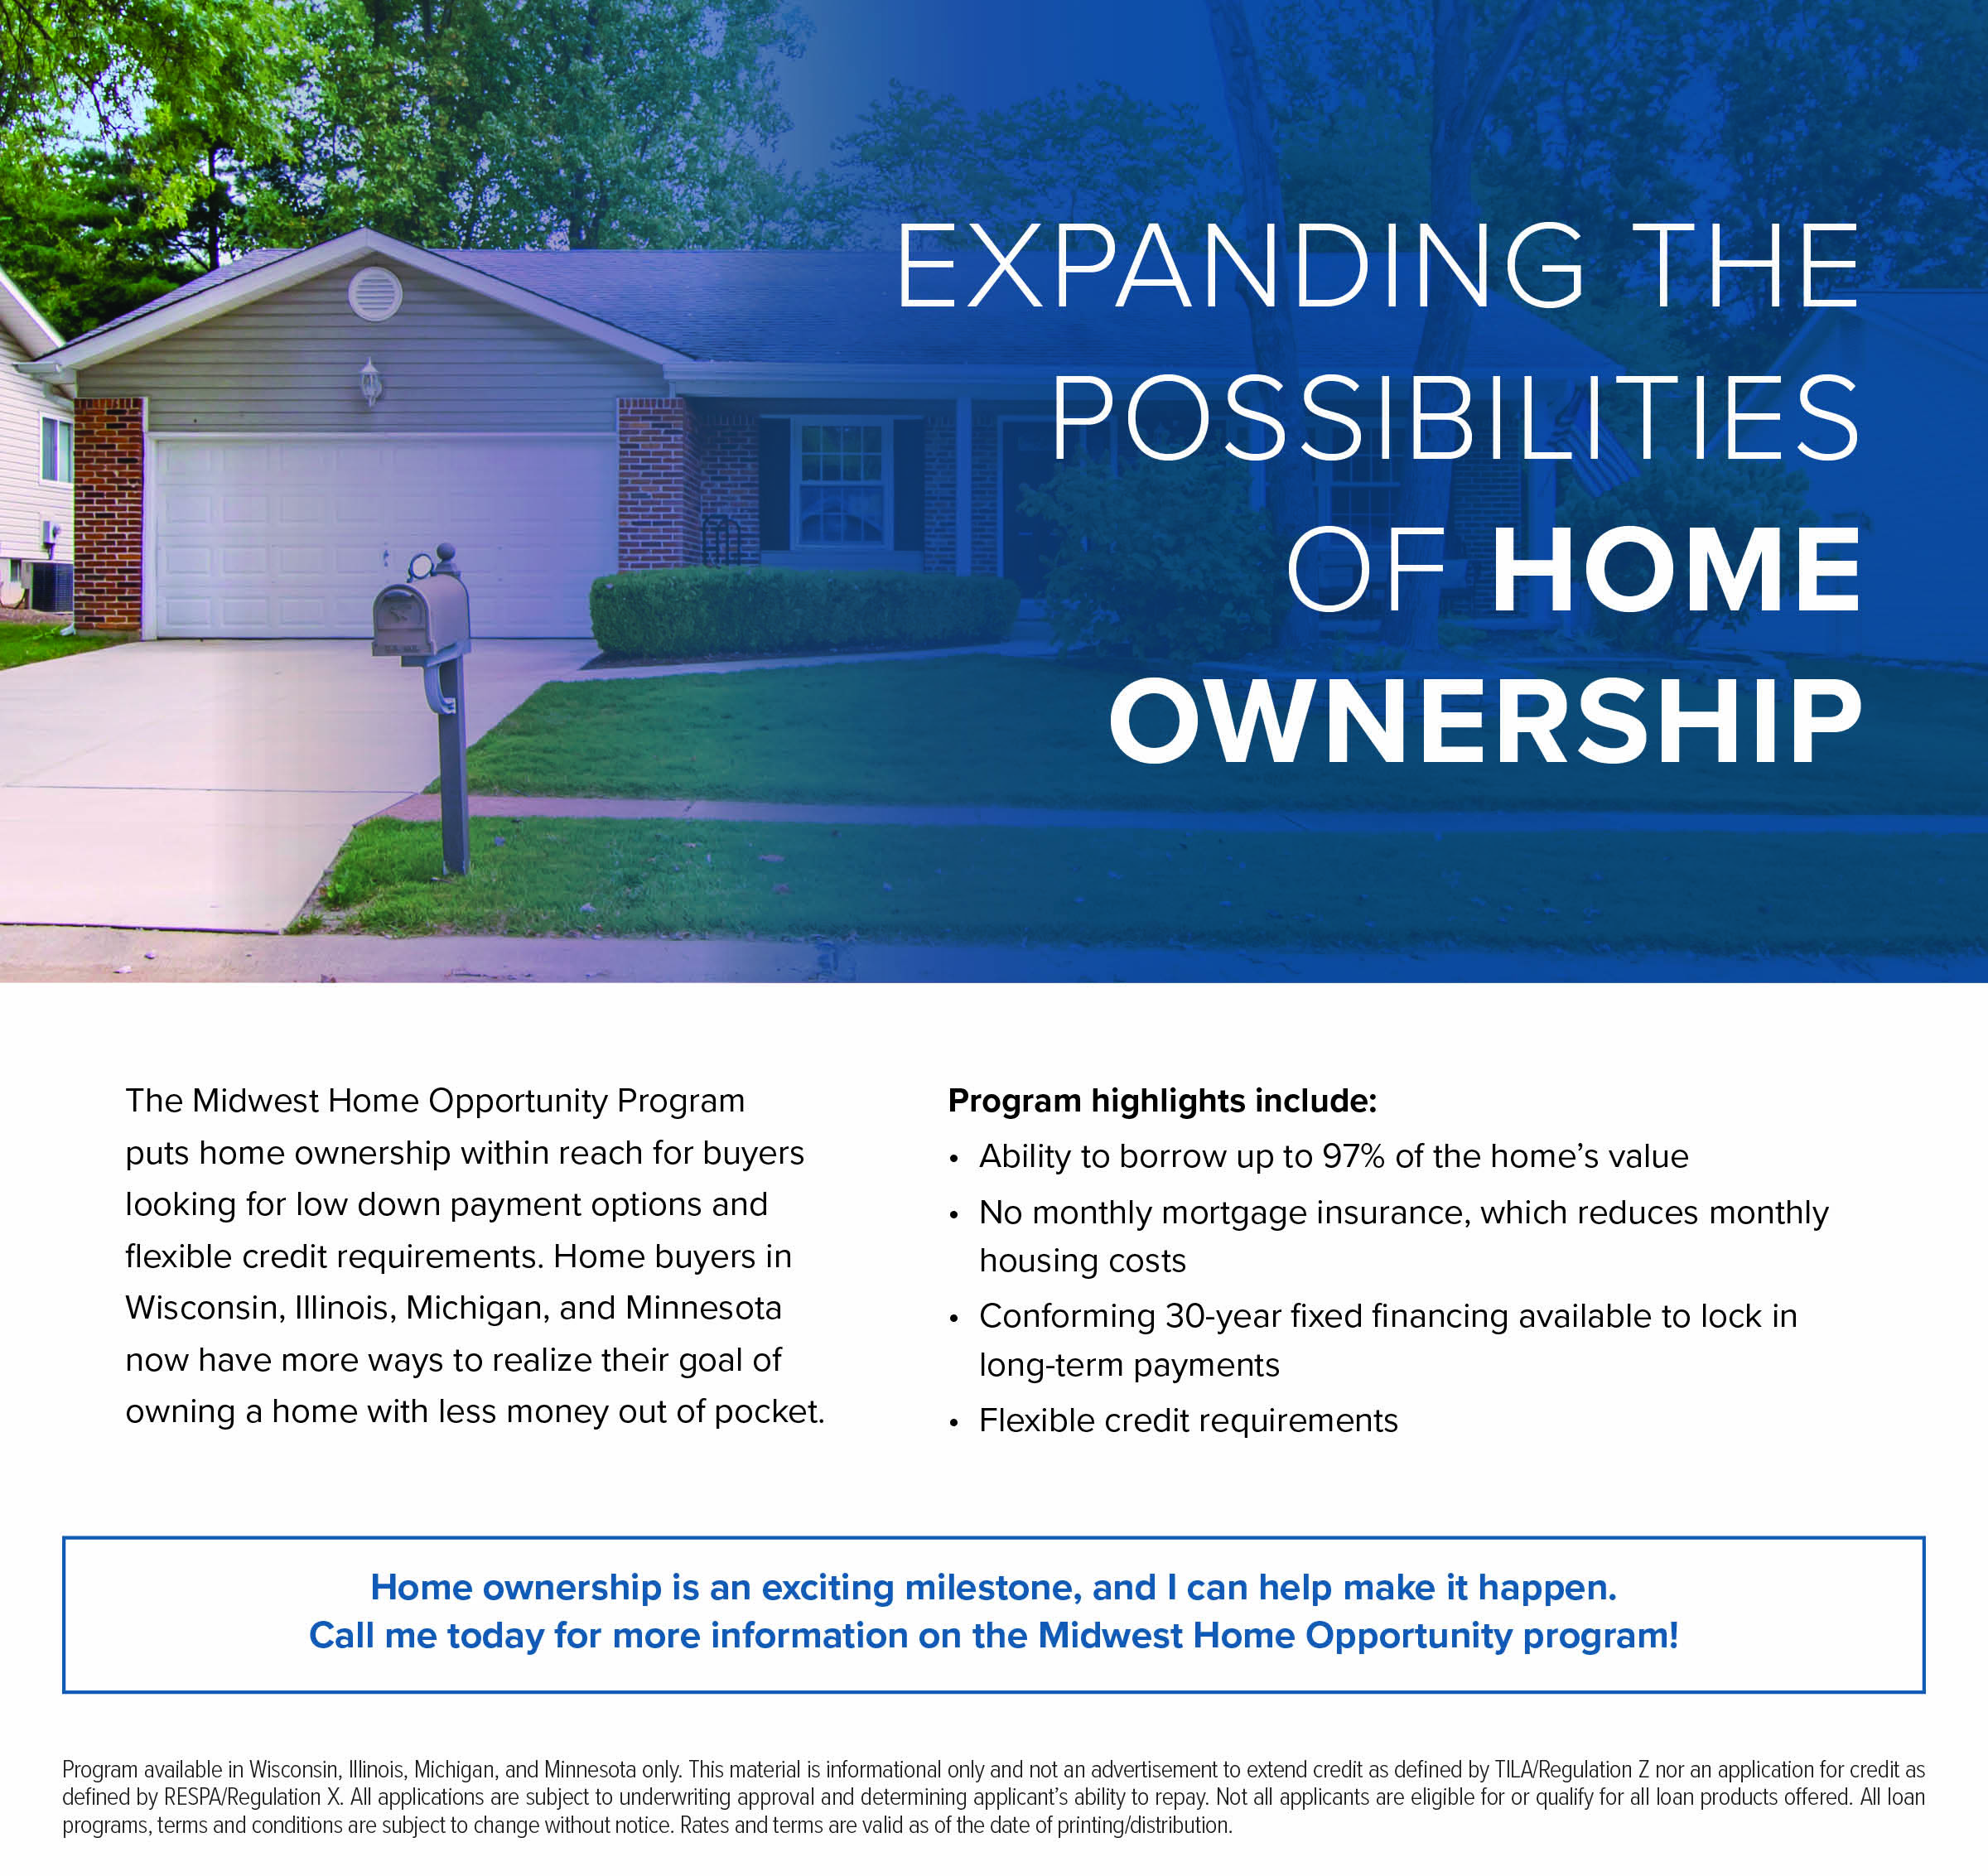 State Specifc - WI, IL, MI, MN - Associated Bank CARE Program - Midwest Home Opportunity.jpg